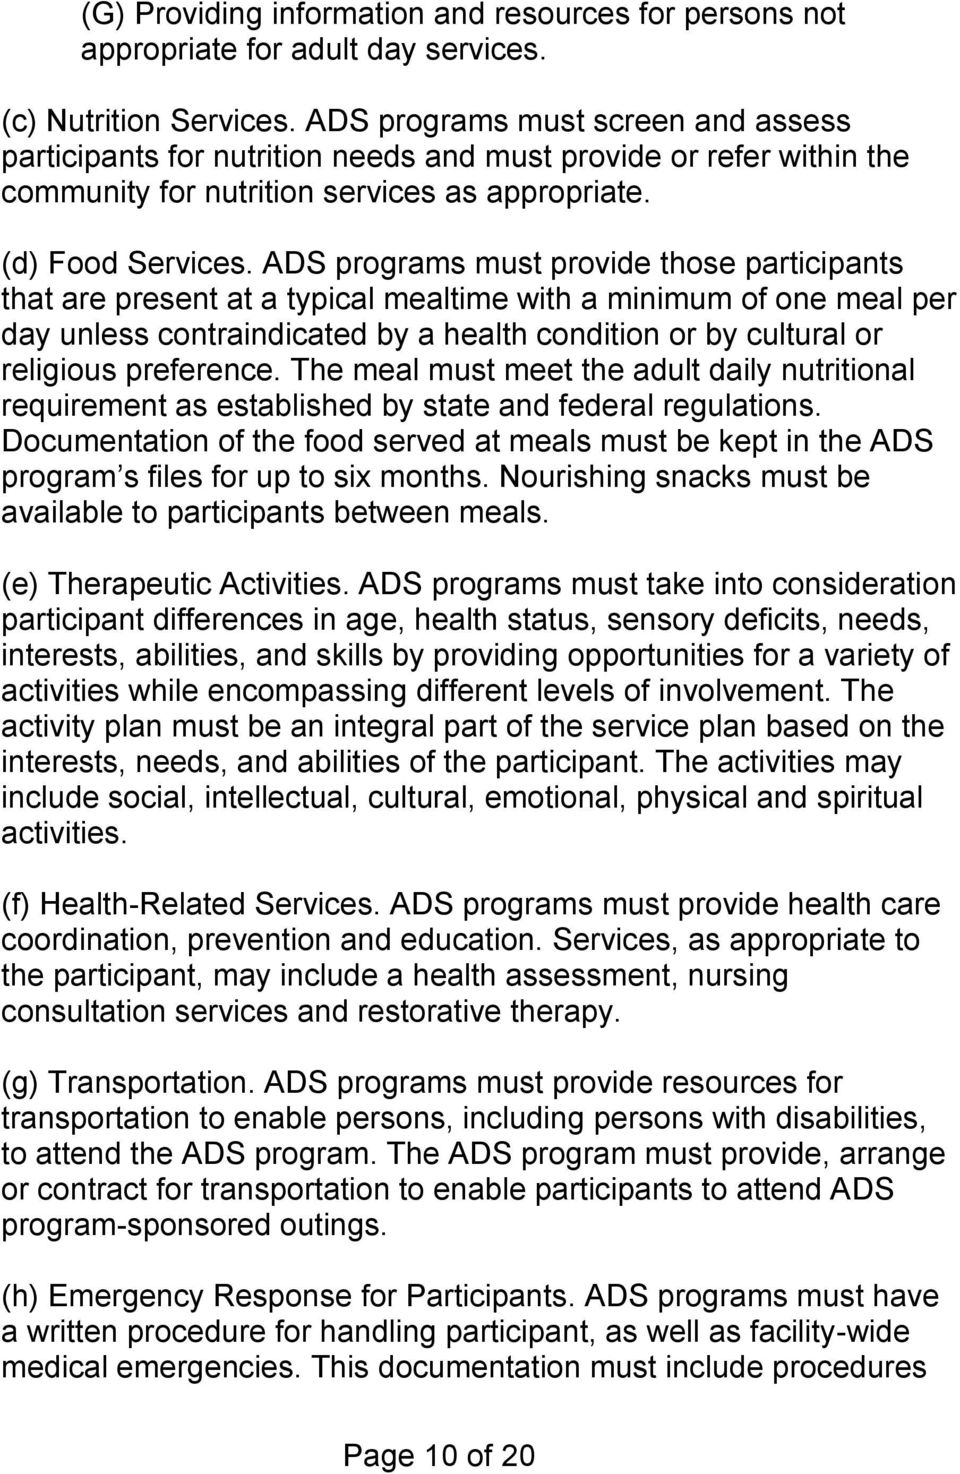 ADS programs must provide those participants that are present at a typical mealtime with a minimum of one meal per day unless contraindicated by a health condition or by cultural or religious